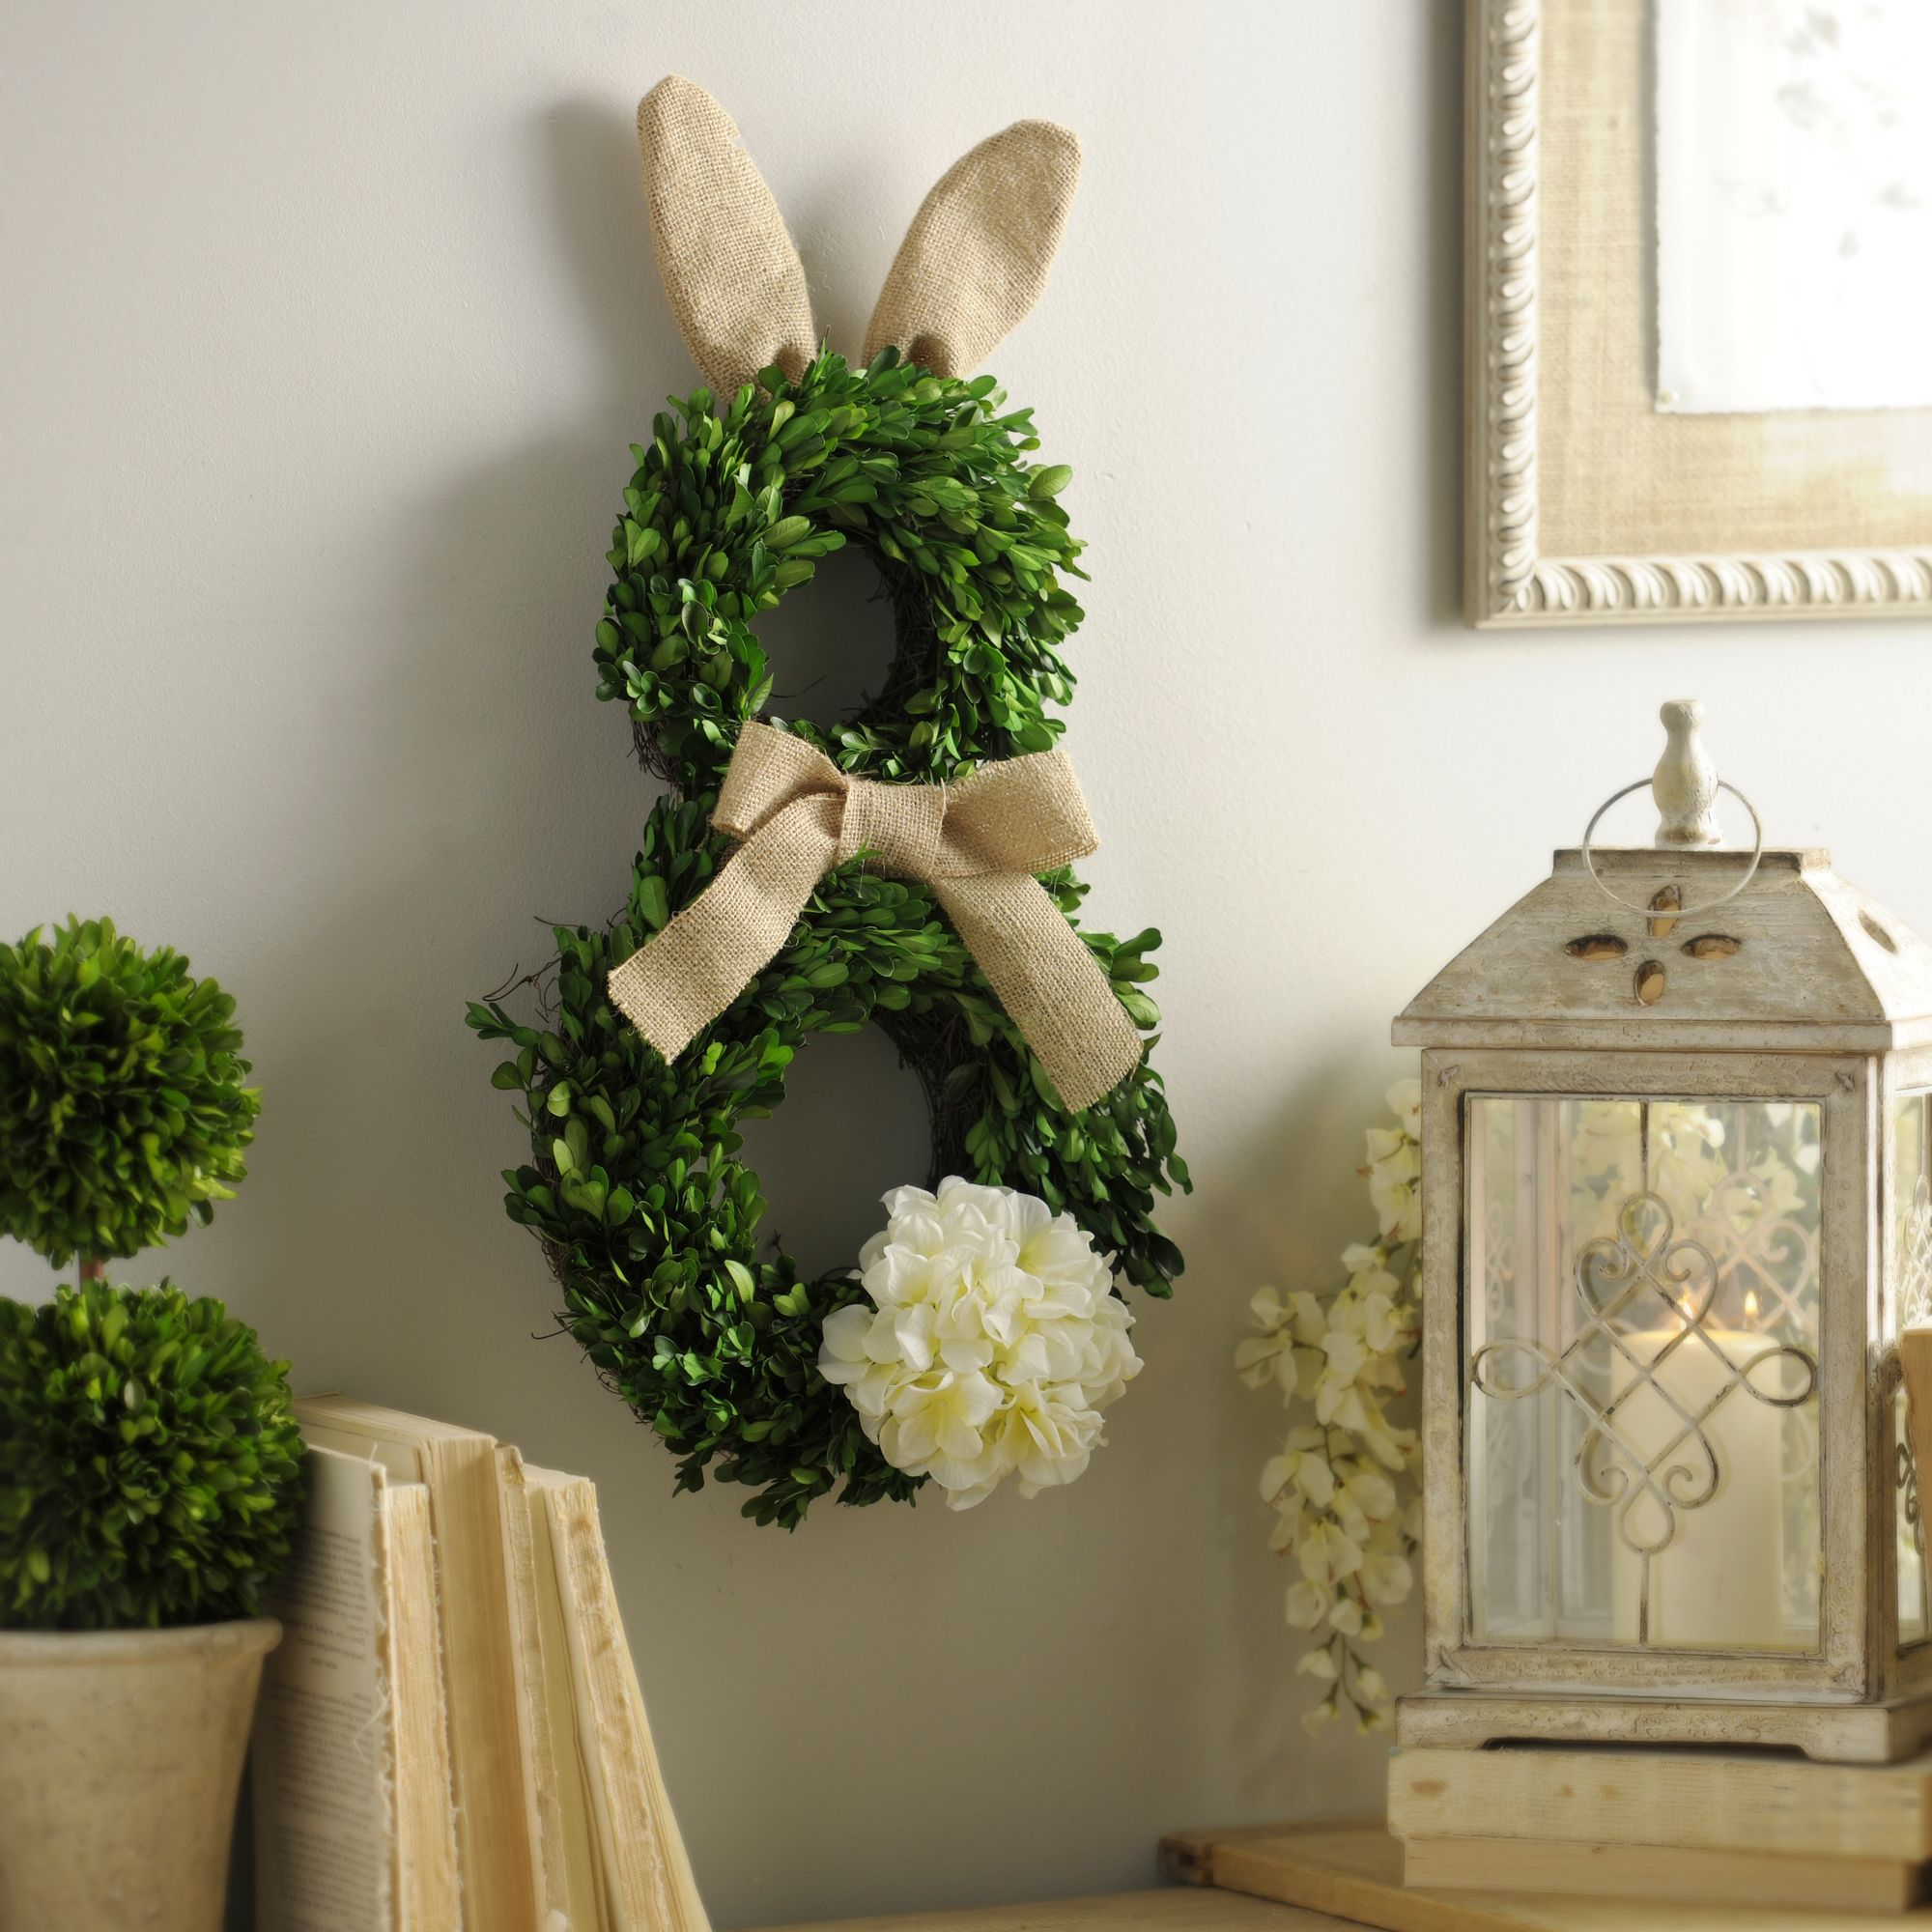 Target Wreaths Home Decor: Product Details Boxwood Easter Bunny Wreath In 2019